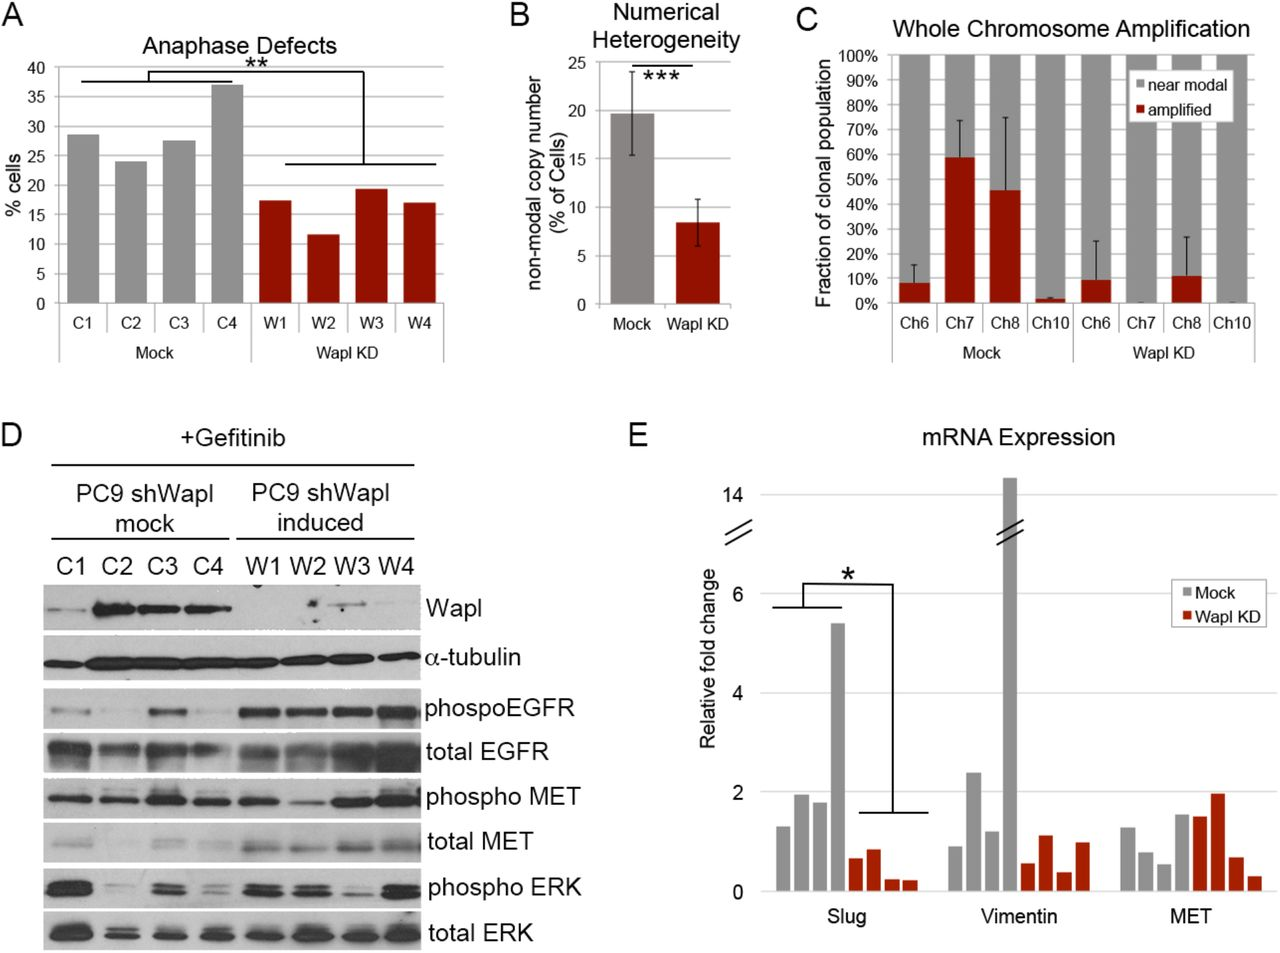 Suppression of CIN influences mechanisms of drug tolerance. A) Quantification of anaphase cells exhibiting lagging chromosomes in clonal populations of drug tolerant cells with (Wapl KD) or without (Mock) Wapl depletion. B C) Gefitinib-tolerant PC9 cell clones derived with or without Wapl depletion labelled with centromere enumeration FISH probes for chromosomes 6, 7, 8, and 10 and quantified for intratumor numerical heterogeneity. D) Western blot showing Wapl levels and EGFR pathway status in four each of mock and Wapl-depleted drug tolerant clones. E) qPCR analysis of mRNA levels indicative of EMT pathway activation (slug, vimentin) and MET expression in mock and Wapl-depleted drug tolerant clones.